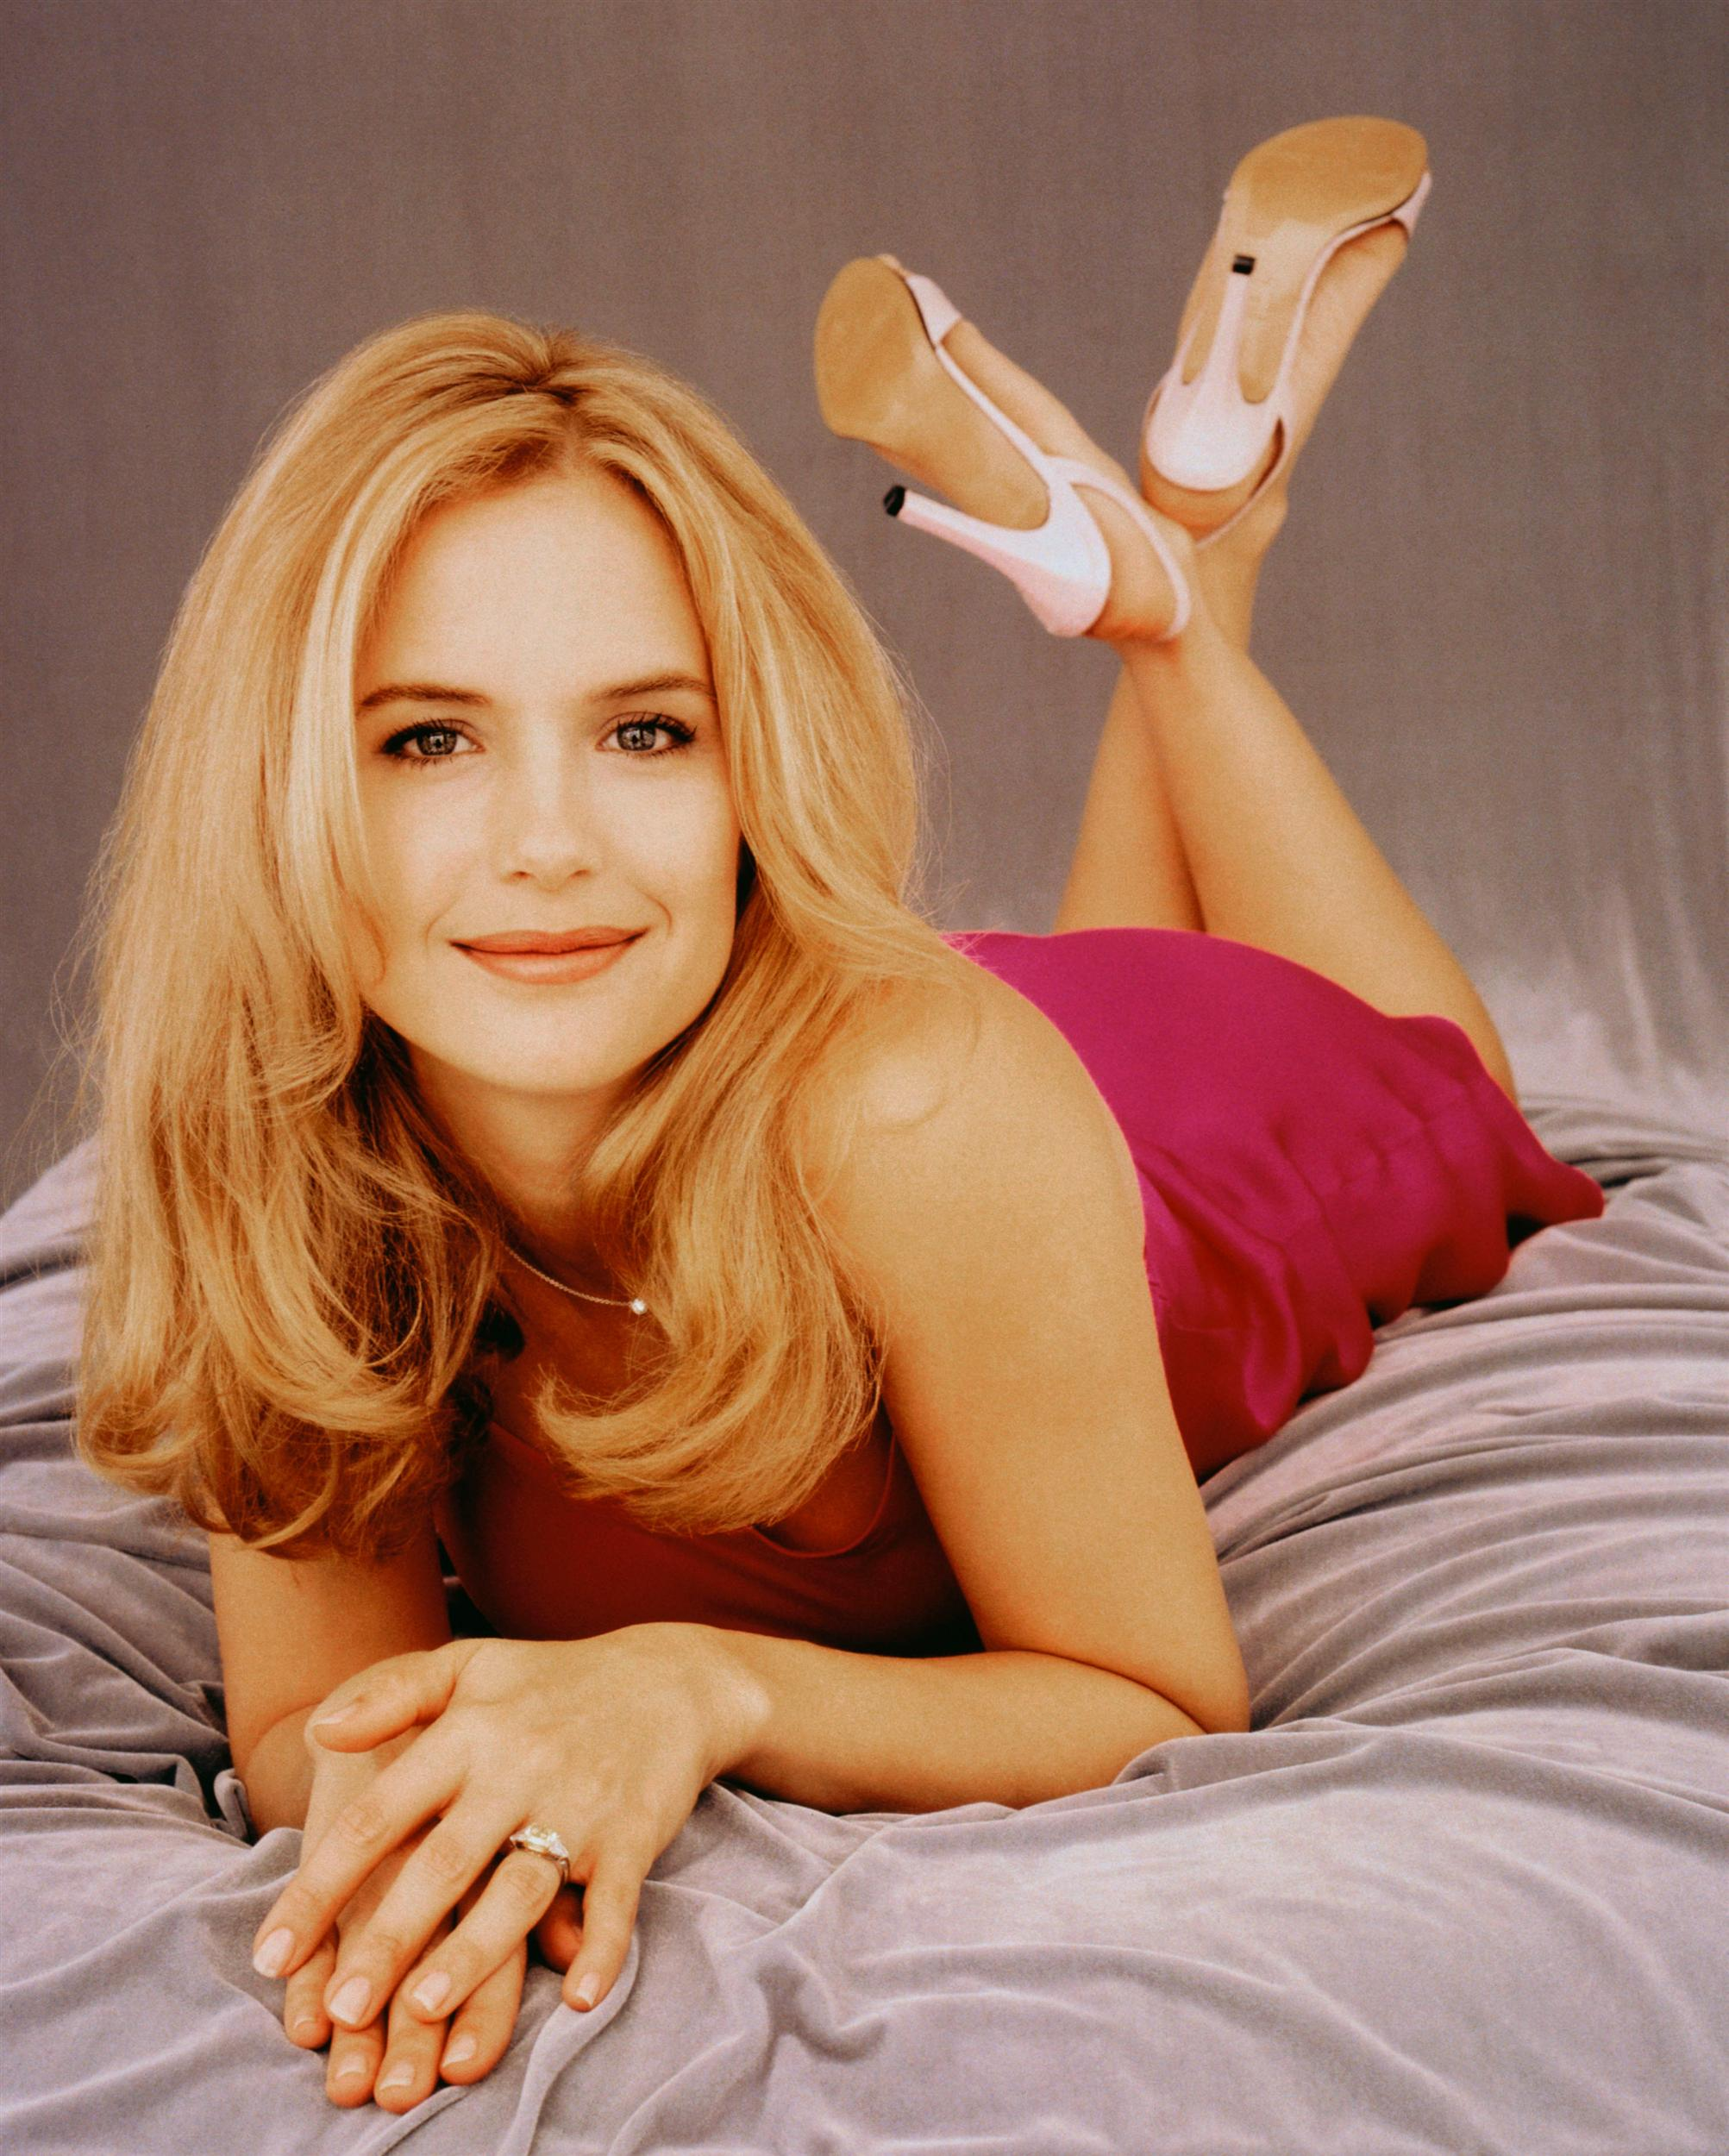 Kelly Preston photo 17 of 44 pics wallpaper   photo 81262 2005x2500